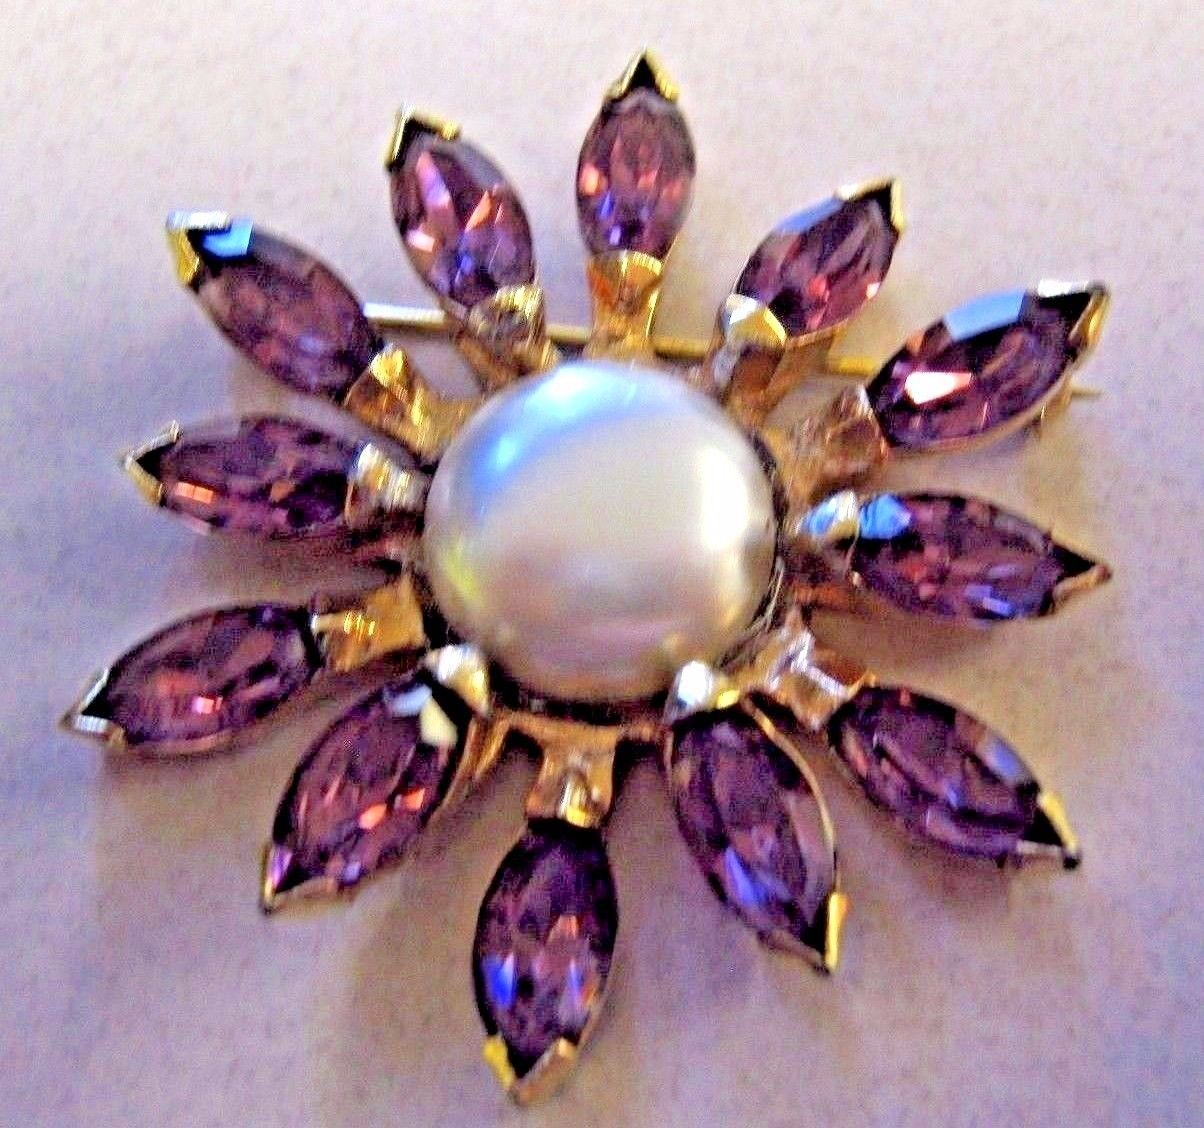 Primary image for BROOCH EISENBERG ORIGINAL BROOCH with large faux pearls and purple RHINESTONES